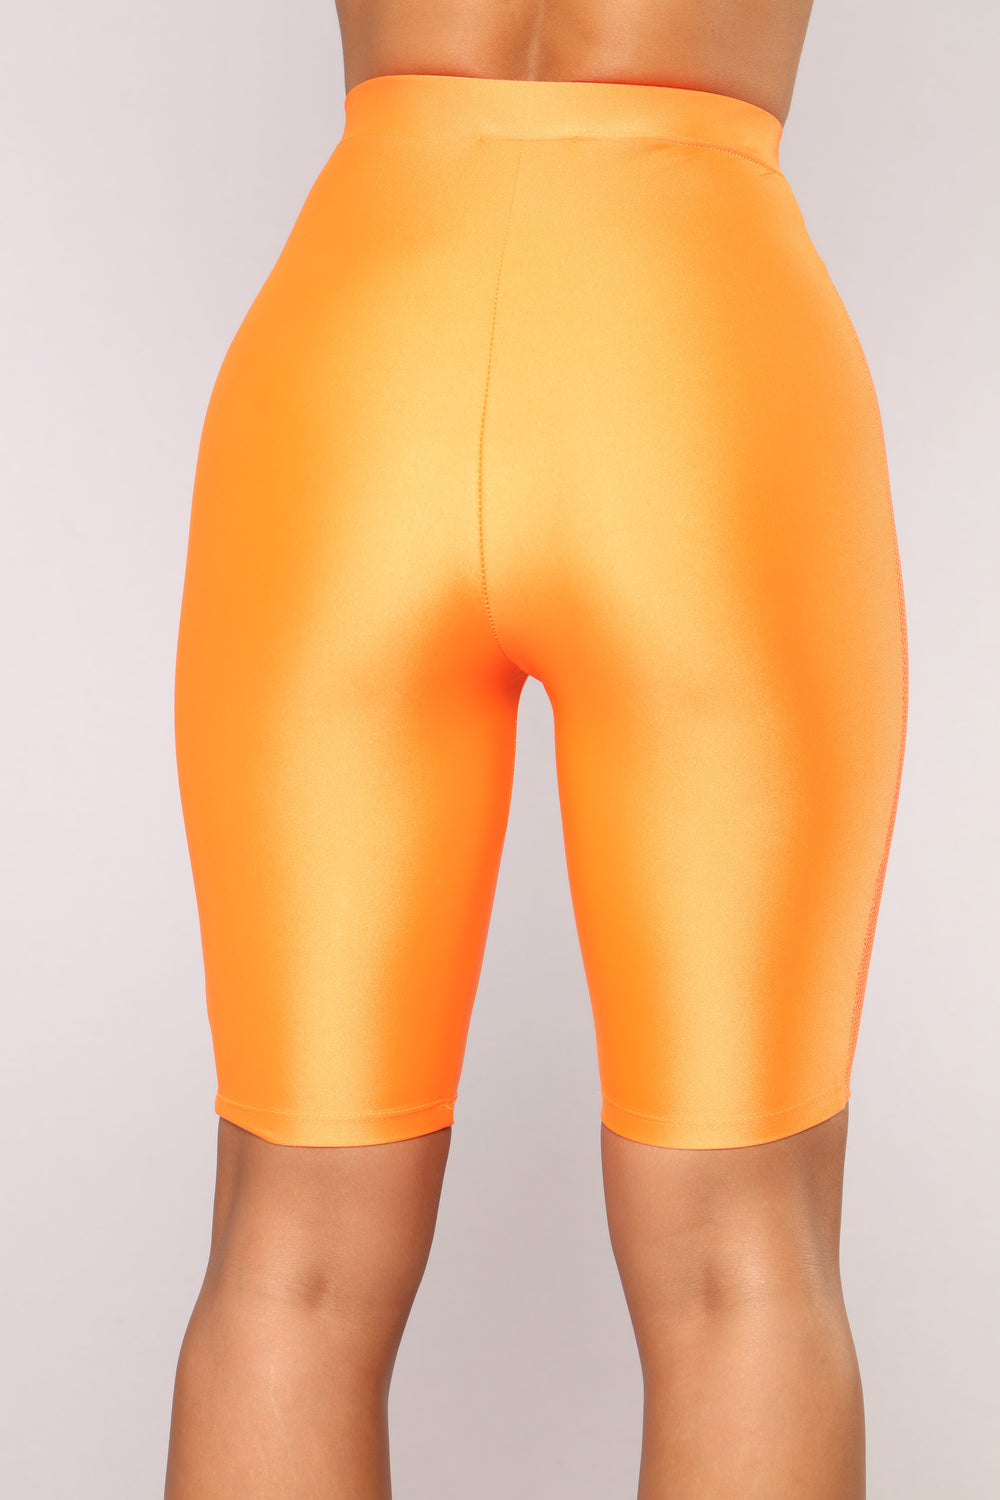 Layla Biker Shorts - Orange